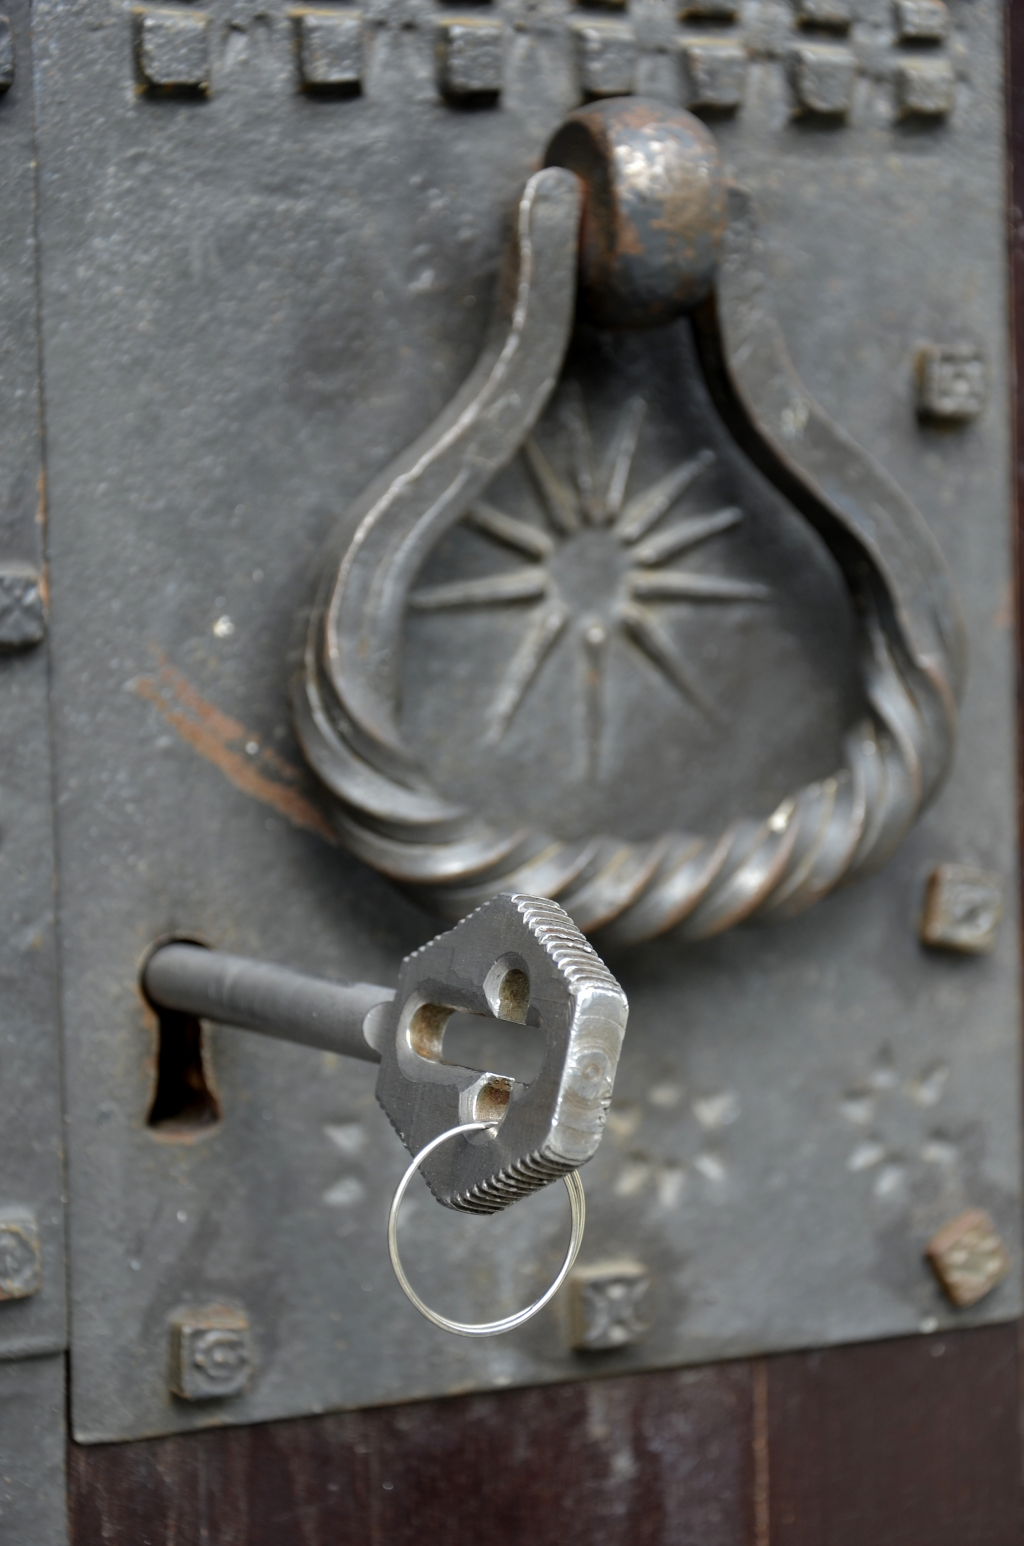 What Is It? & How Does a Skeleton Key Work?